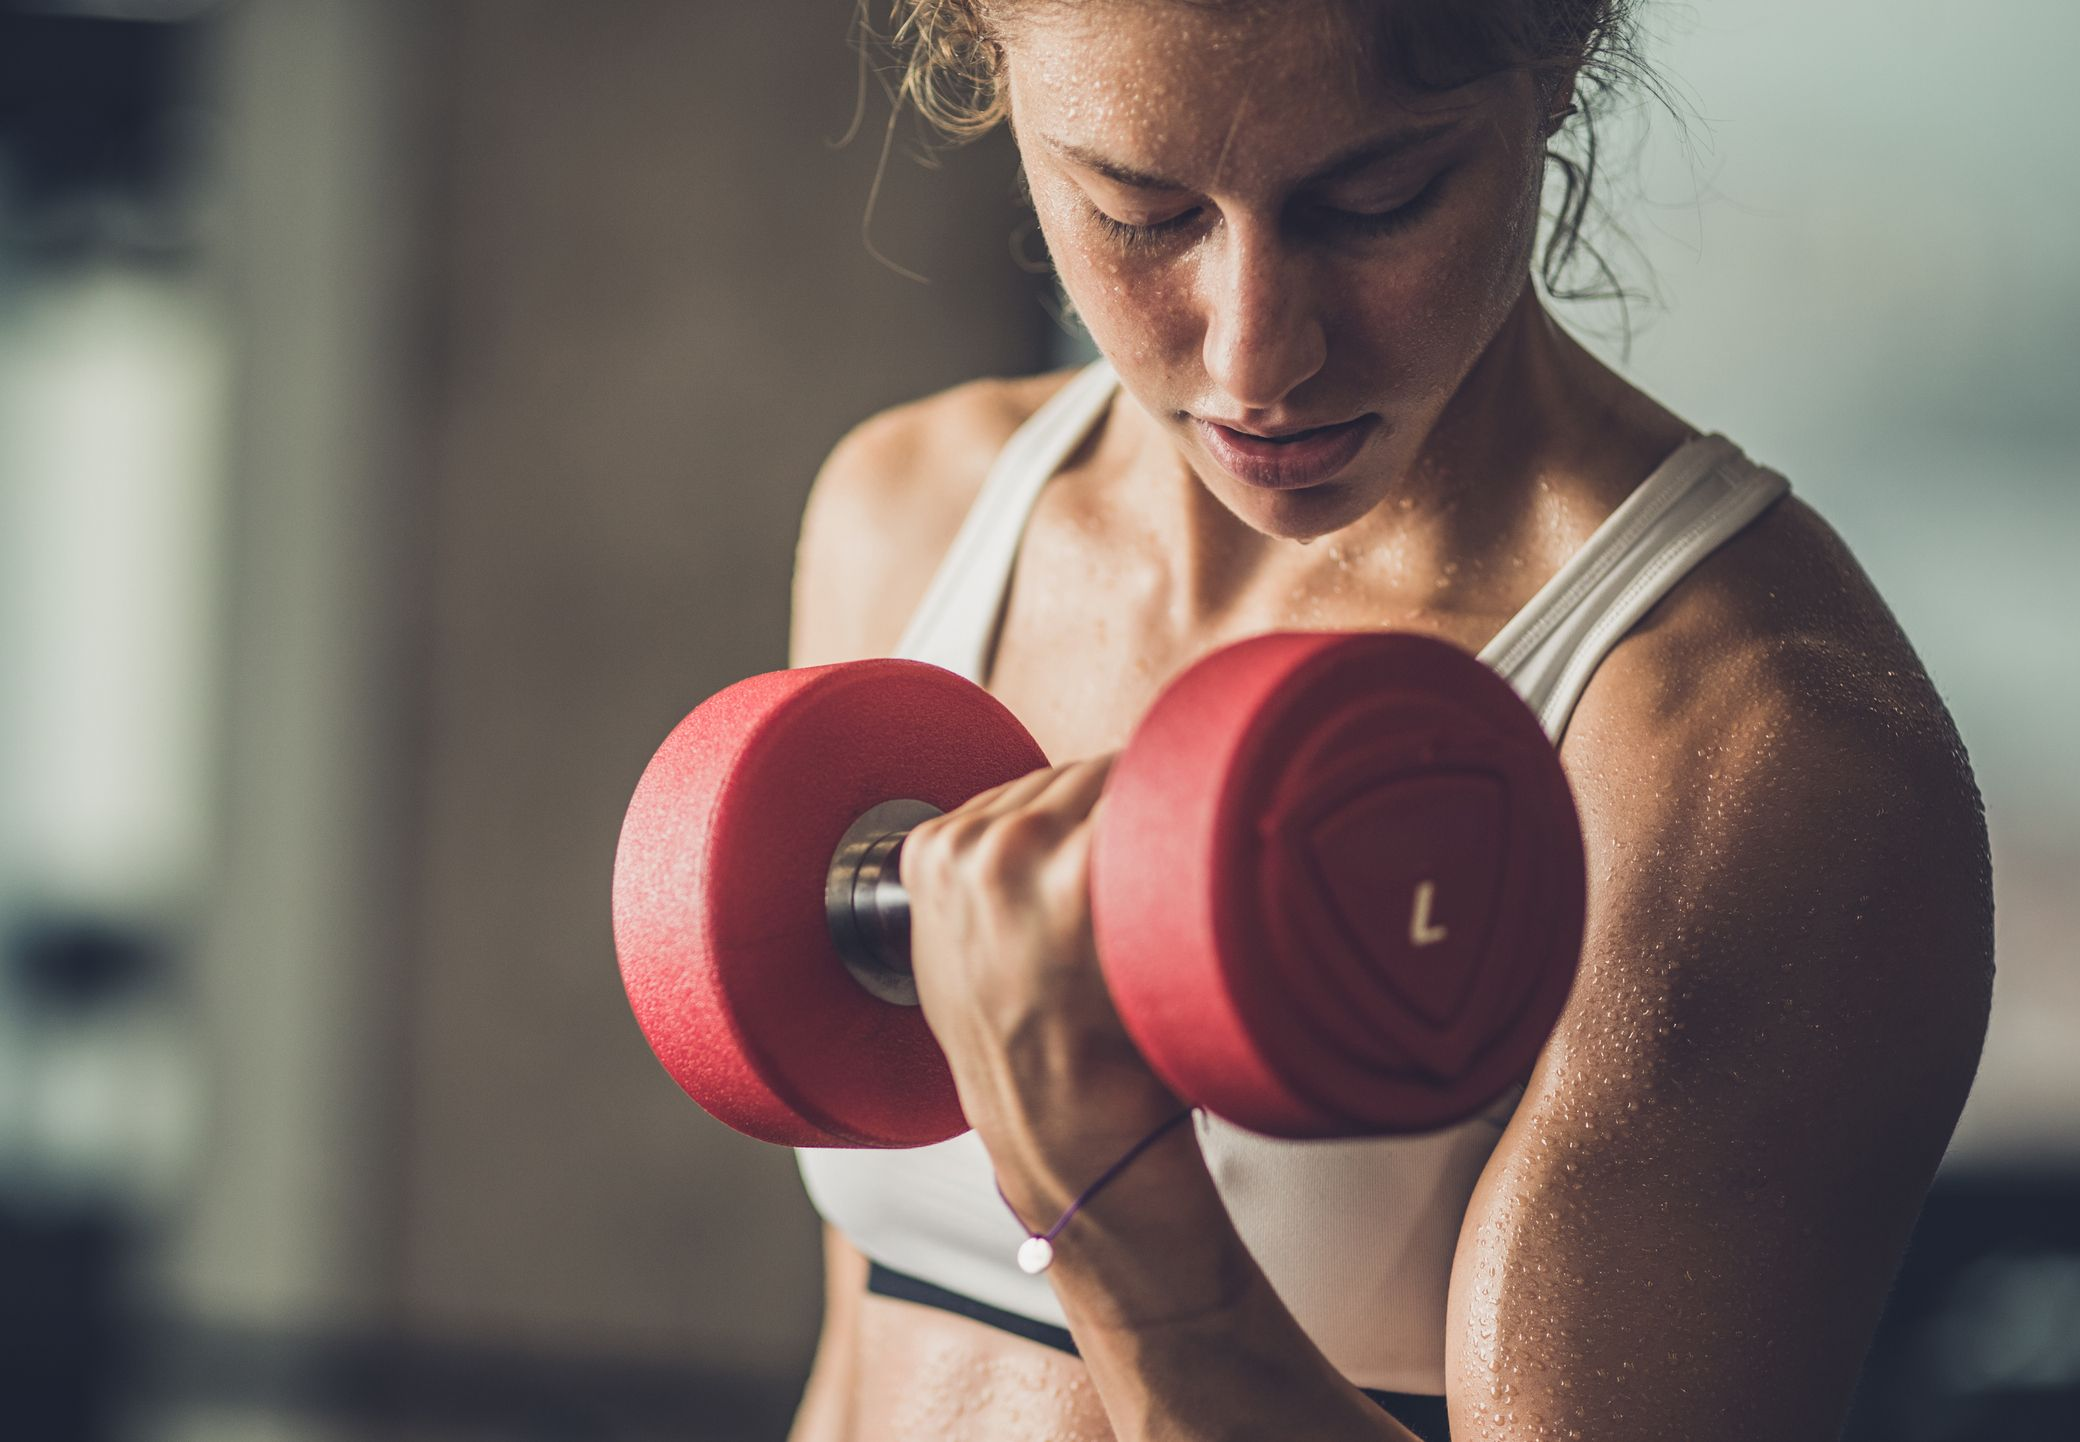 Metabolism and weight loss: How you burn calories